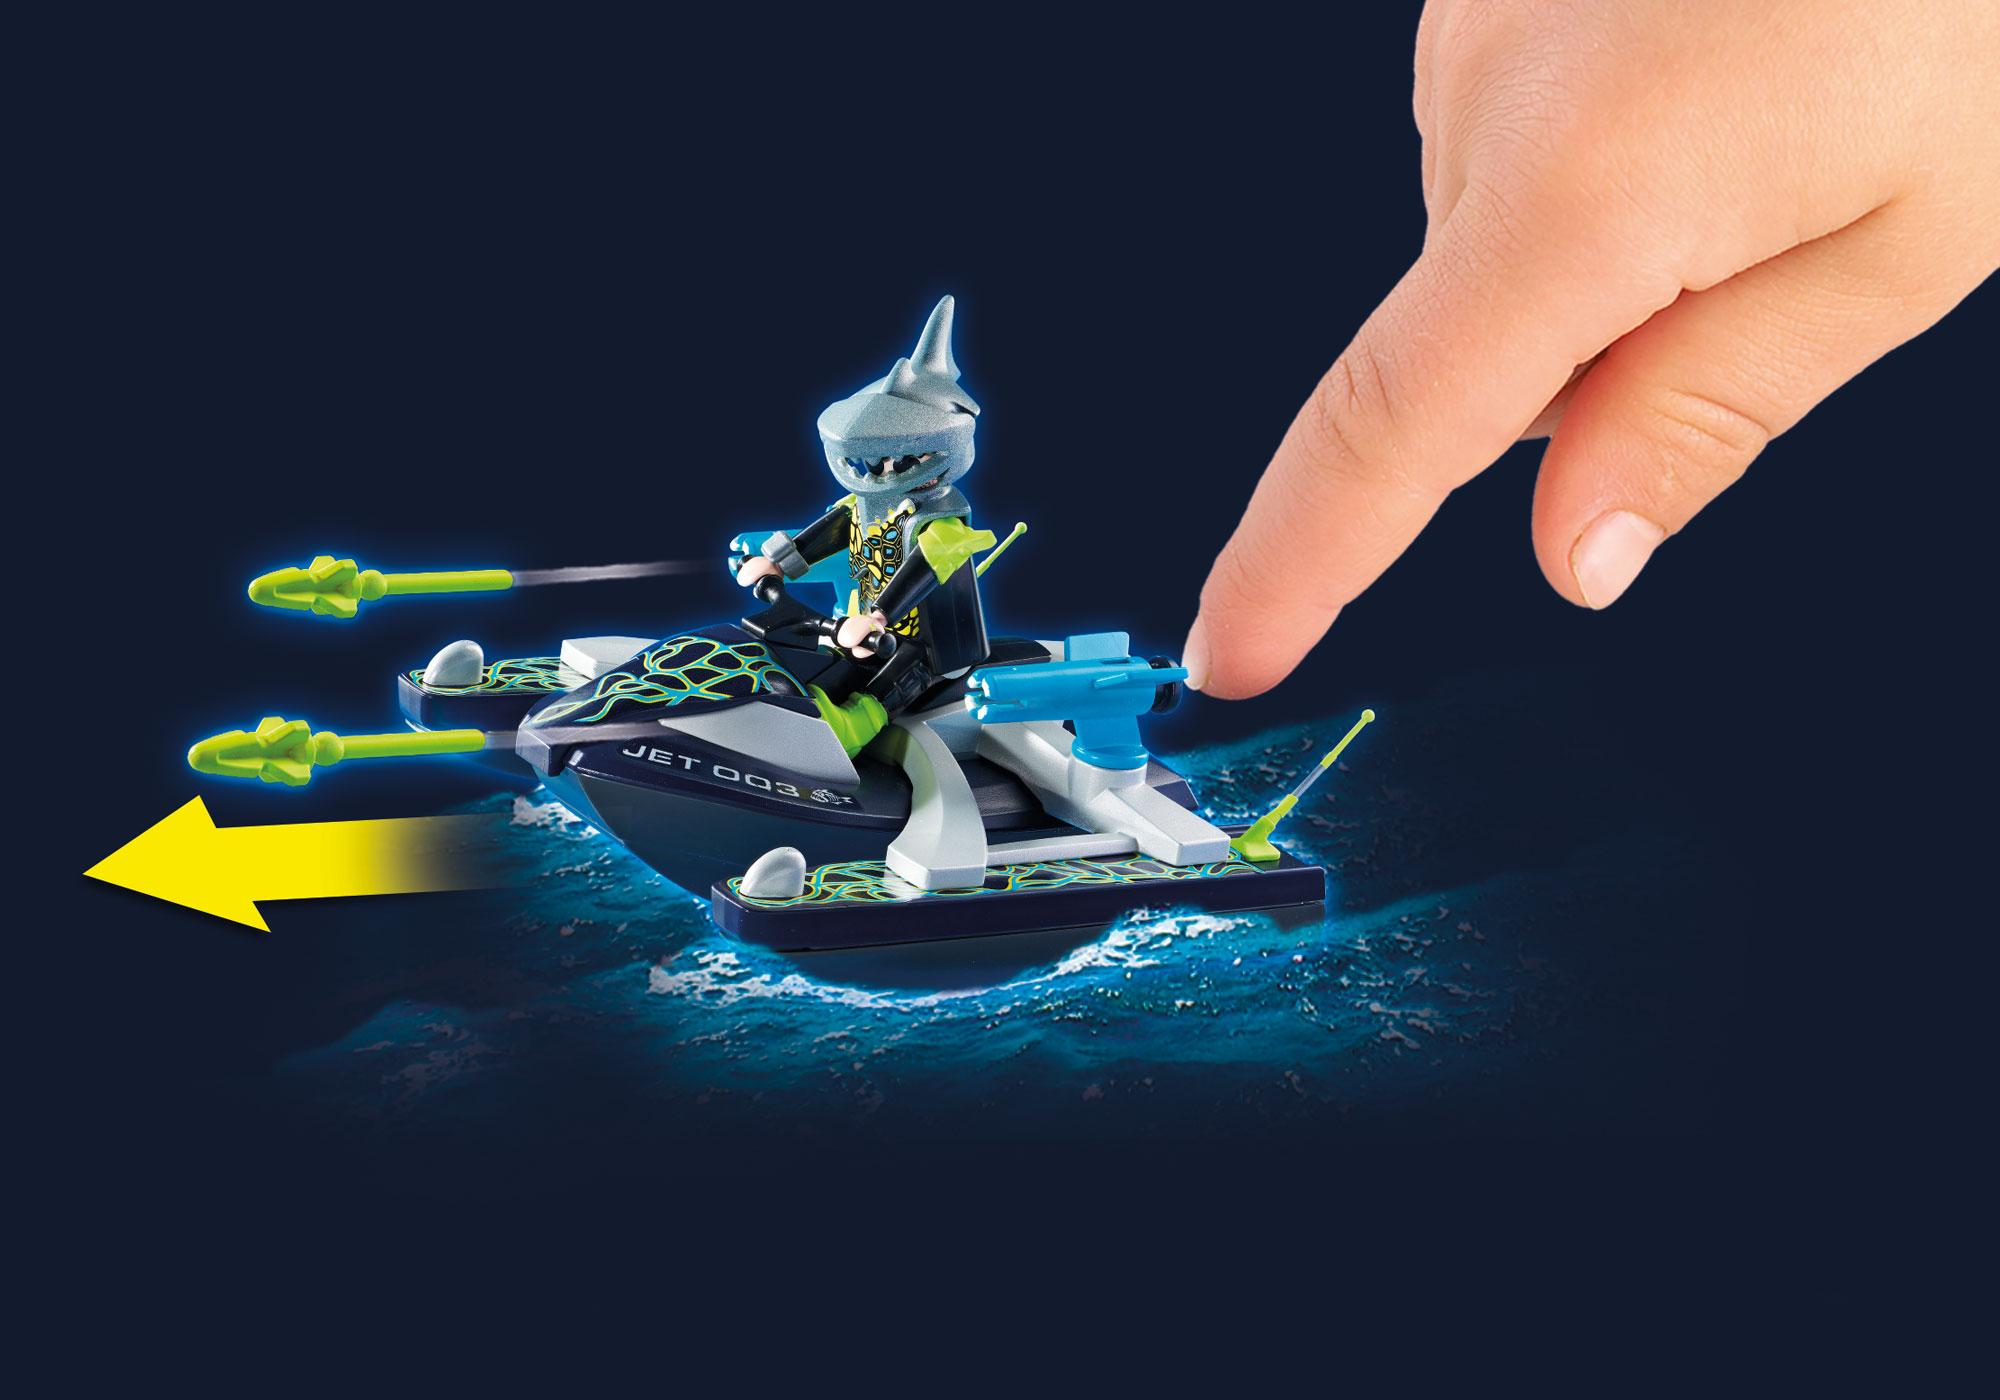 http://media.playmobil.com/i/playmobil/70007_product_extra1/TEAM S.H.A.R.K. Rocket Rafter